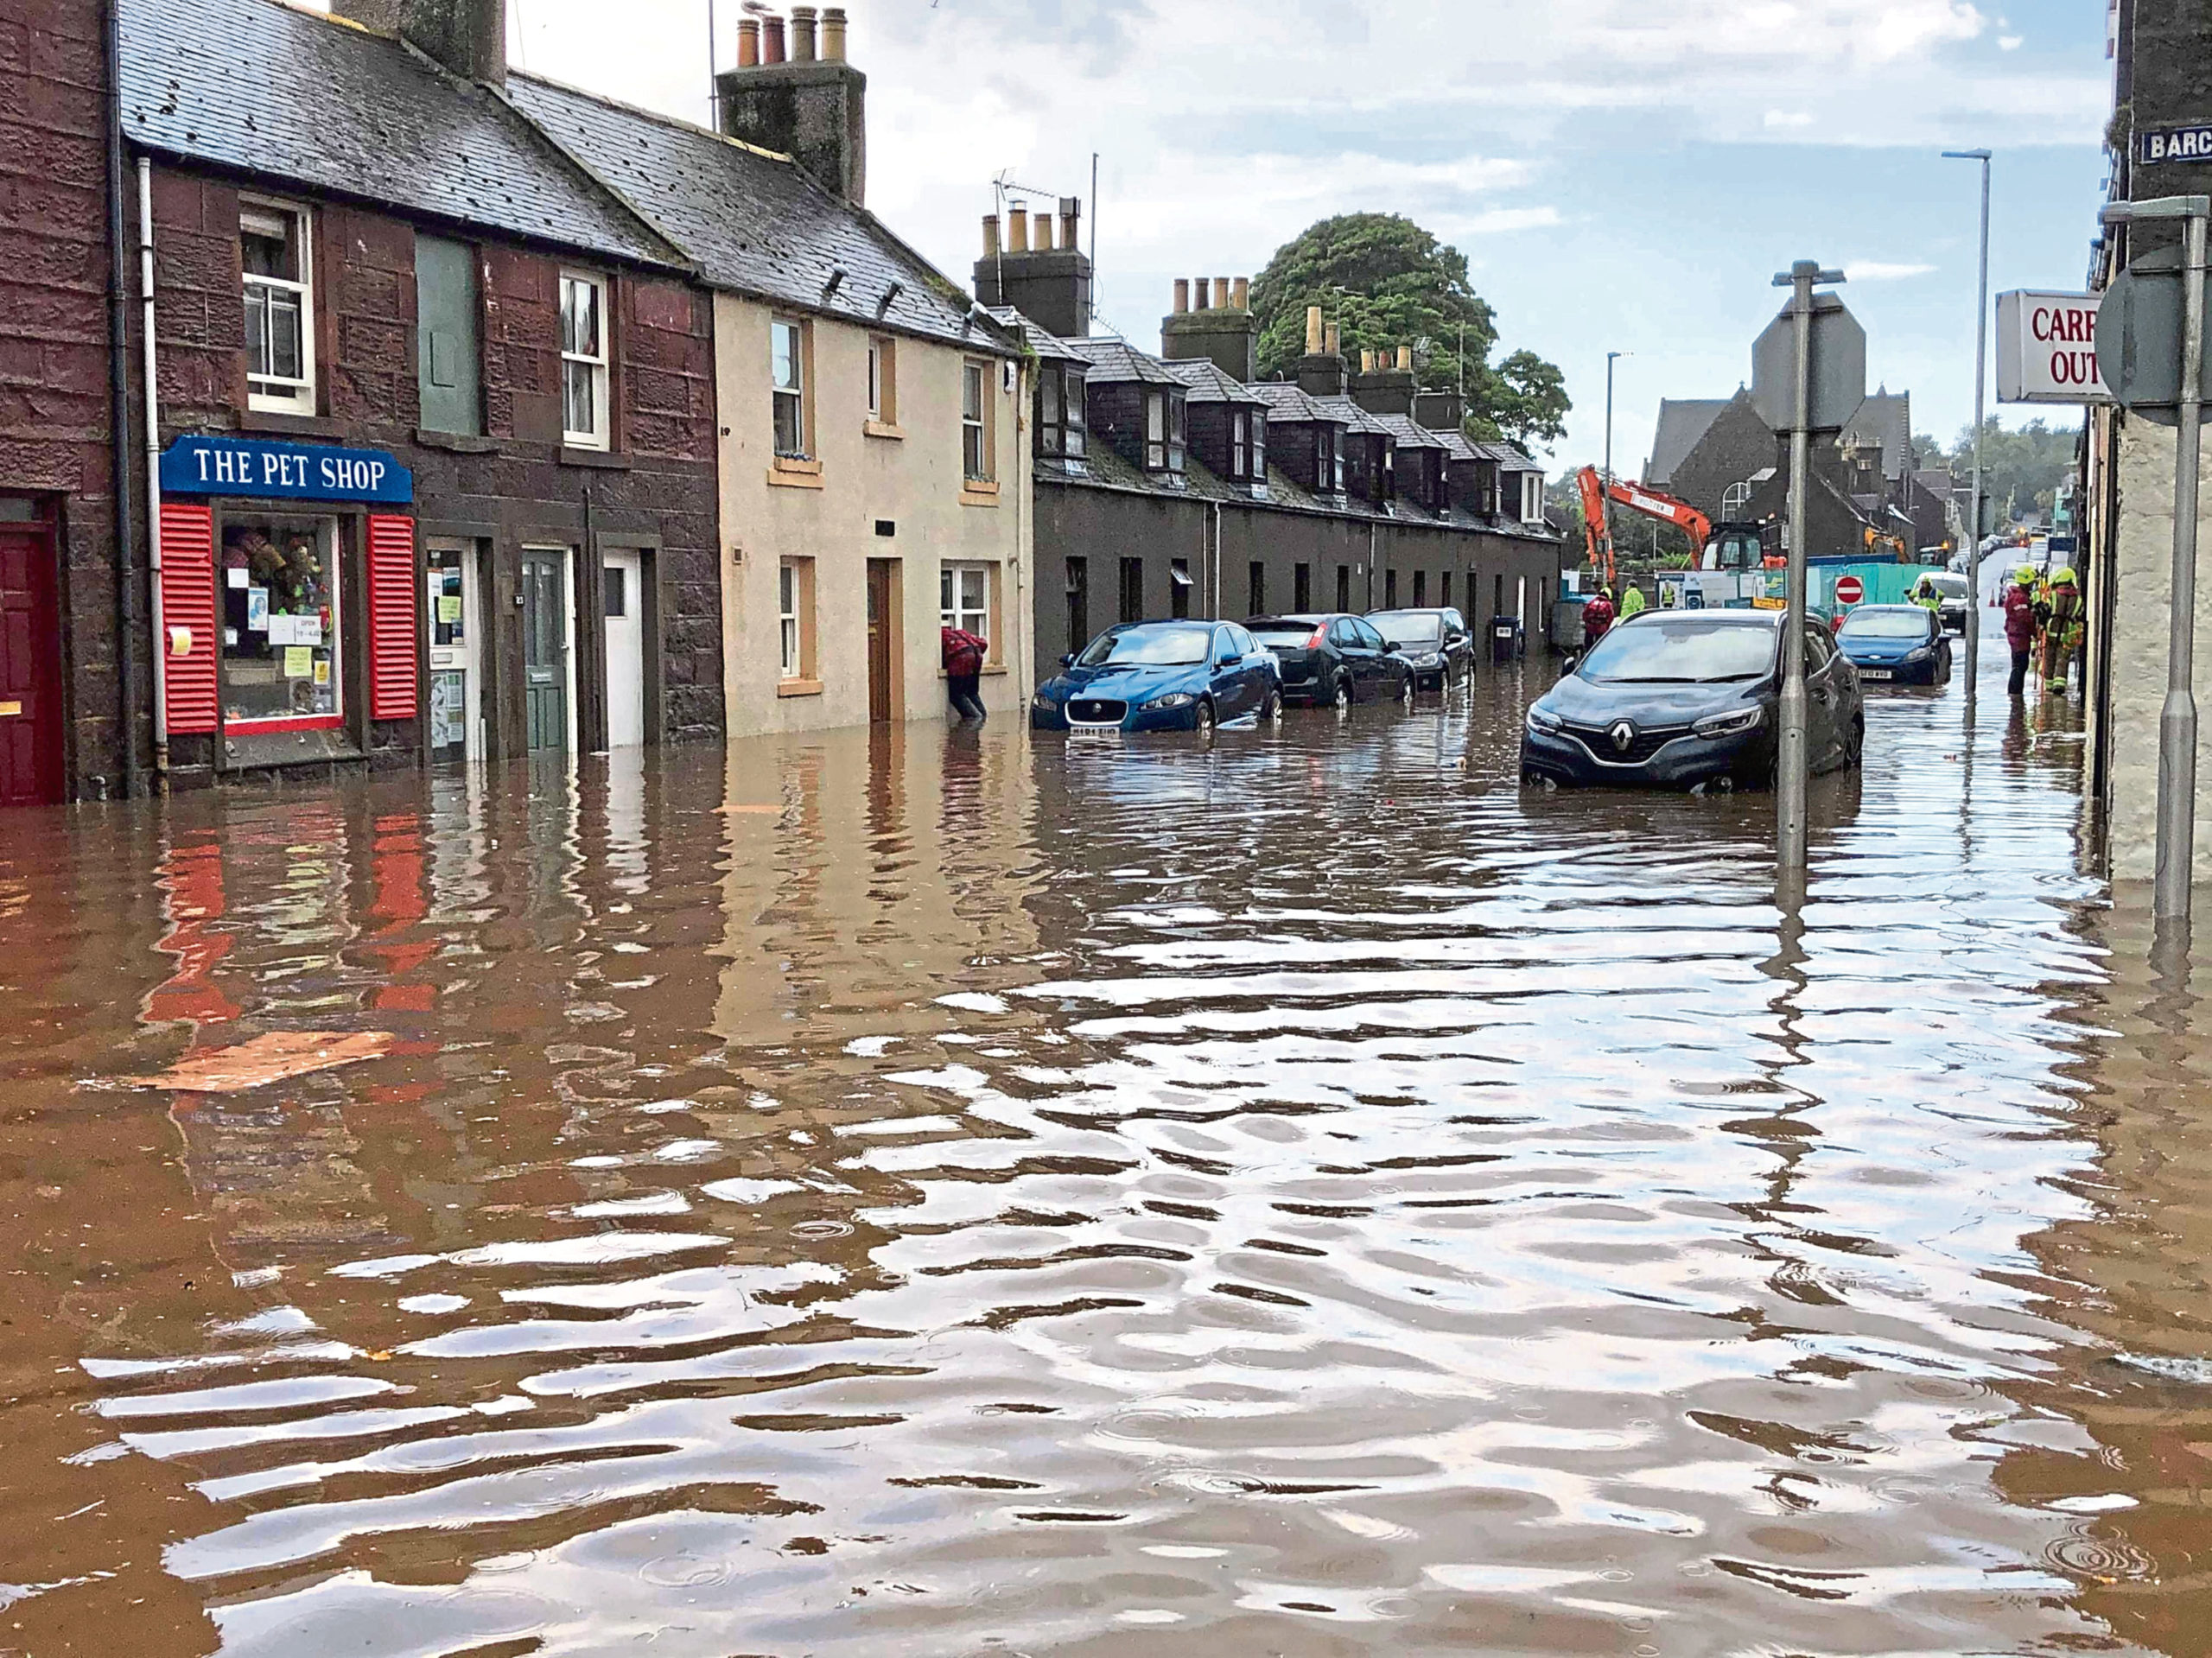 The flooding in Stonehaven last month